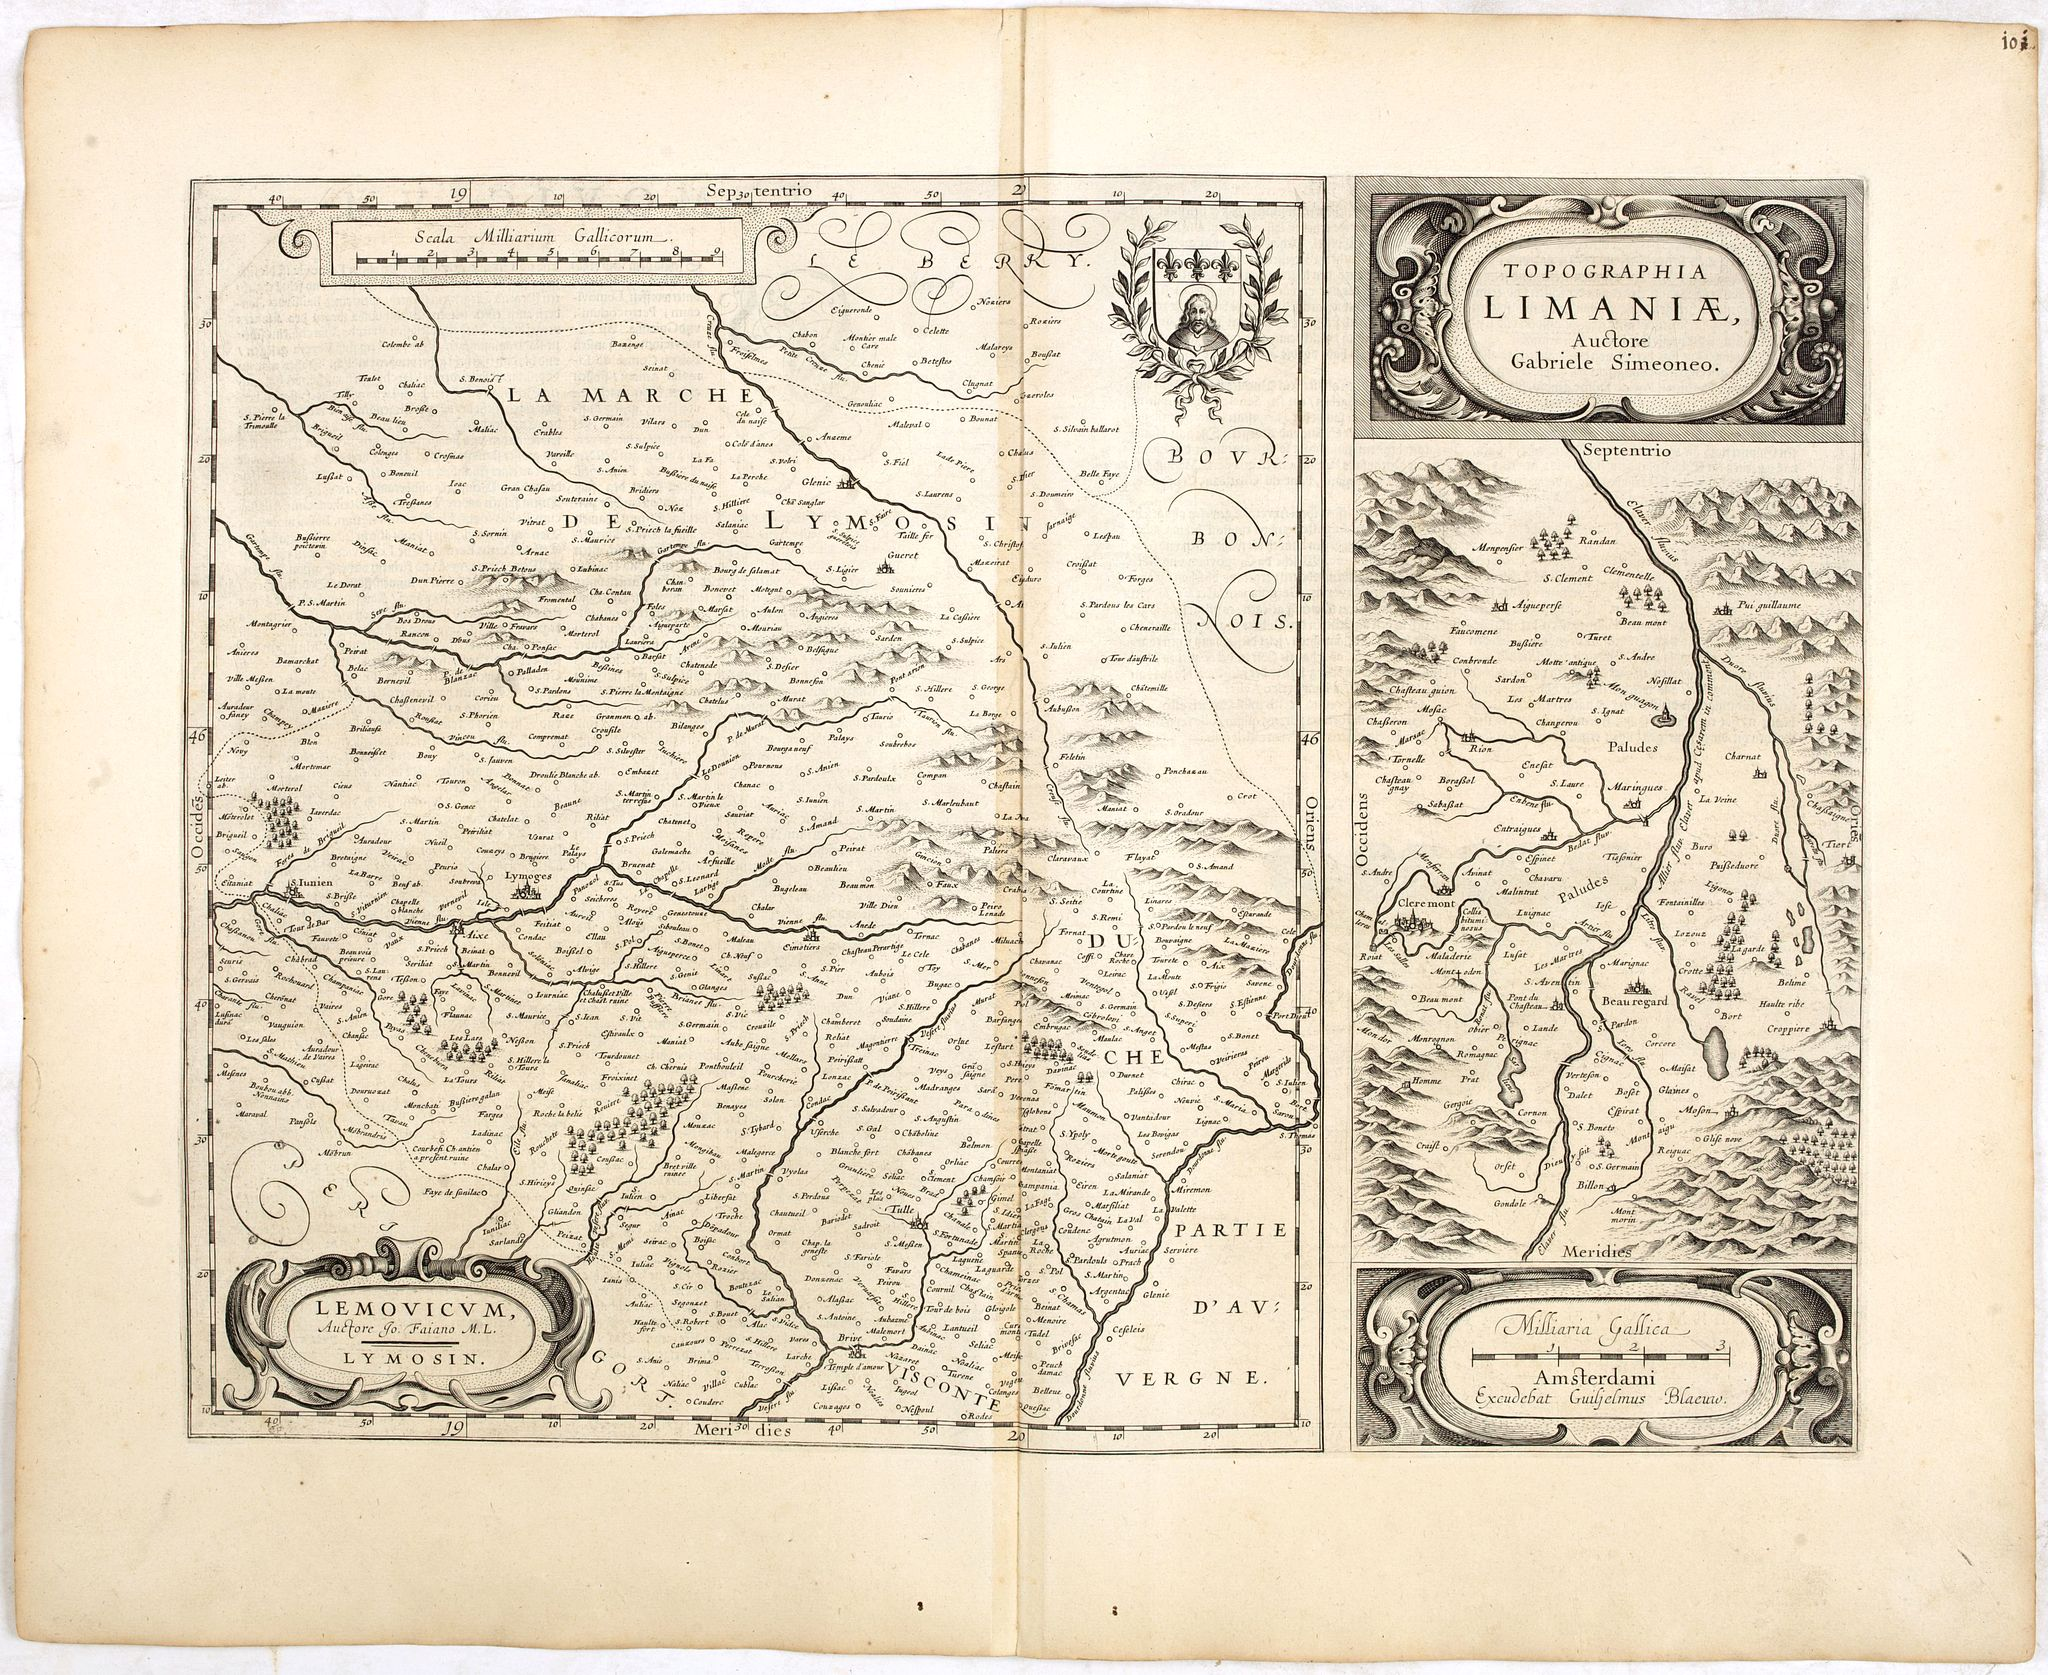 BLAEU, W.,  Lemouicum, Auctore Jo. Faiano M.L. - Lymosin (together with) Topographia Limaniae, Auctore Gabriele Simeoneo., antique map, old maps